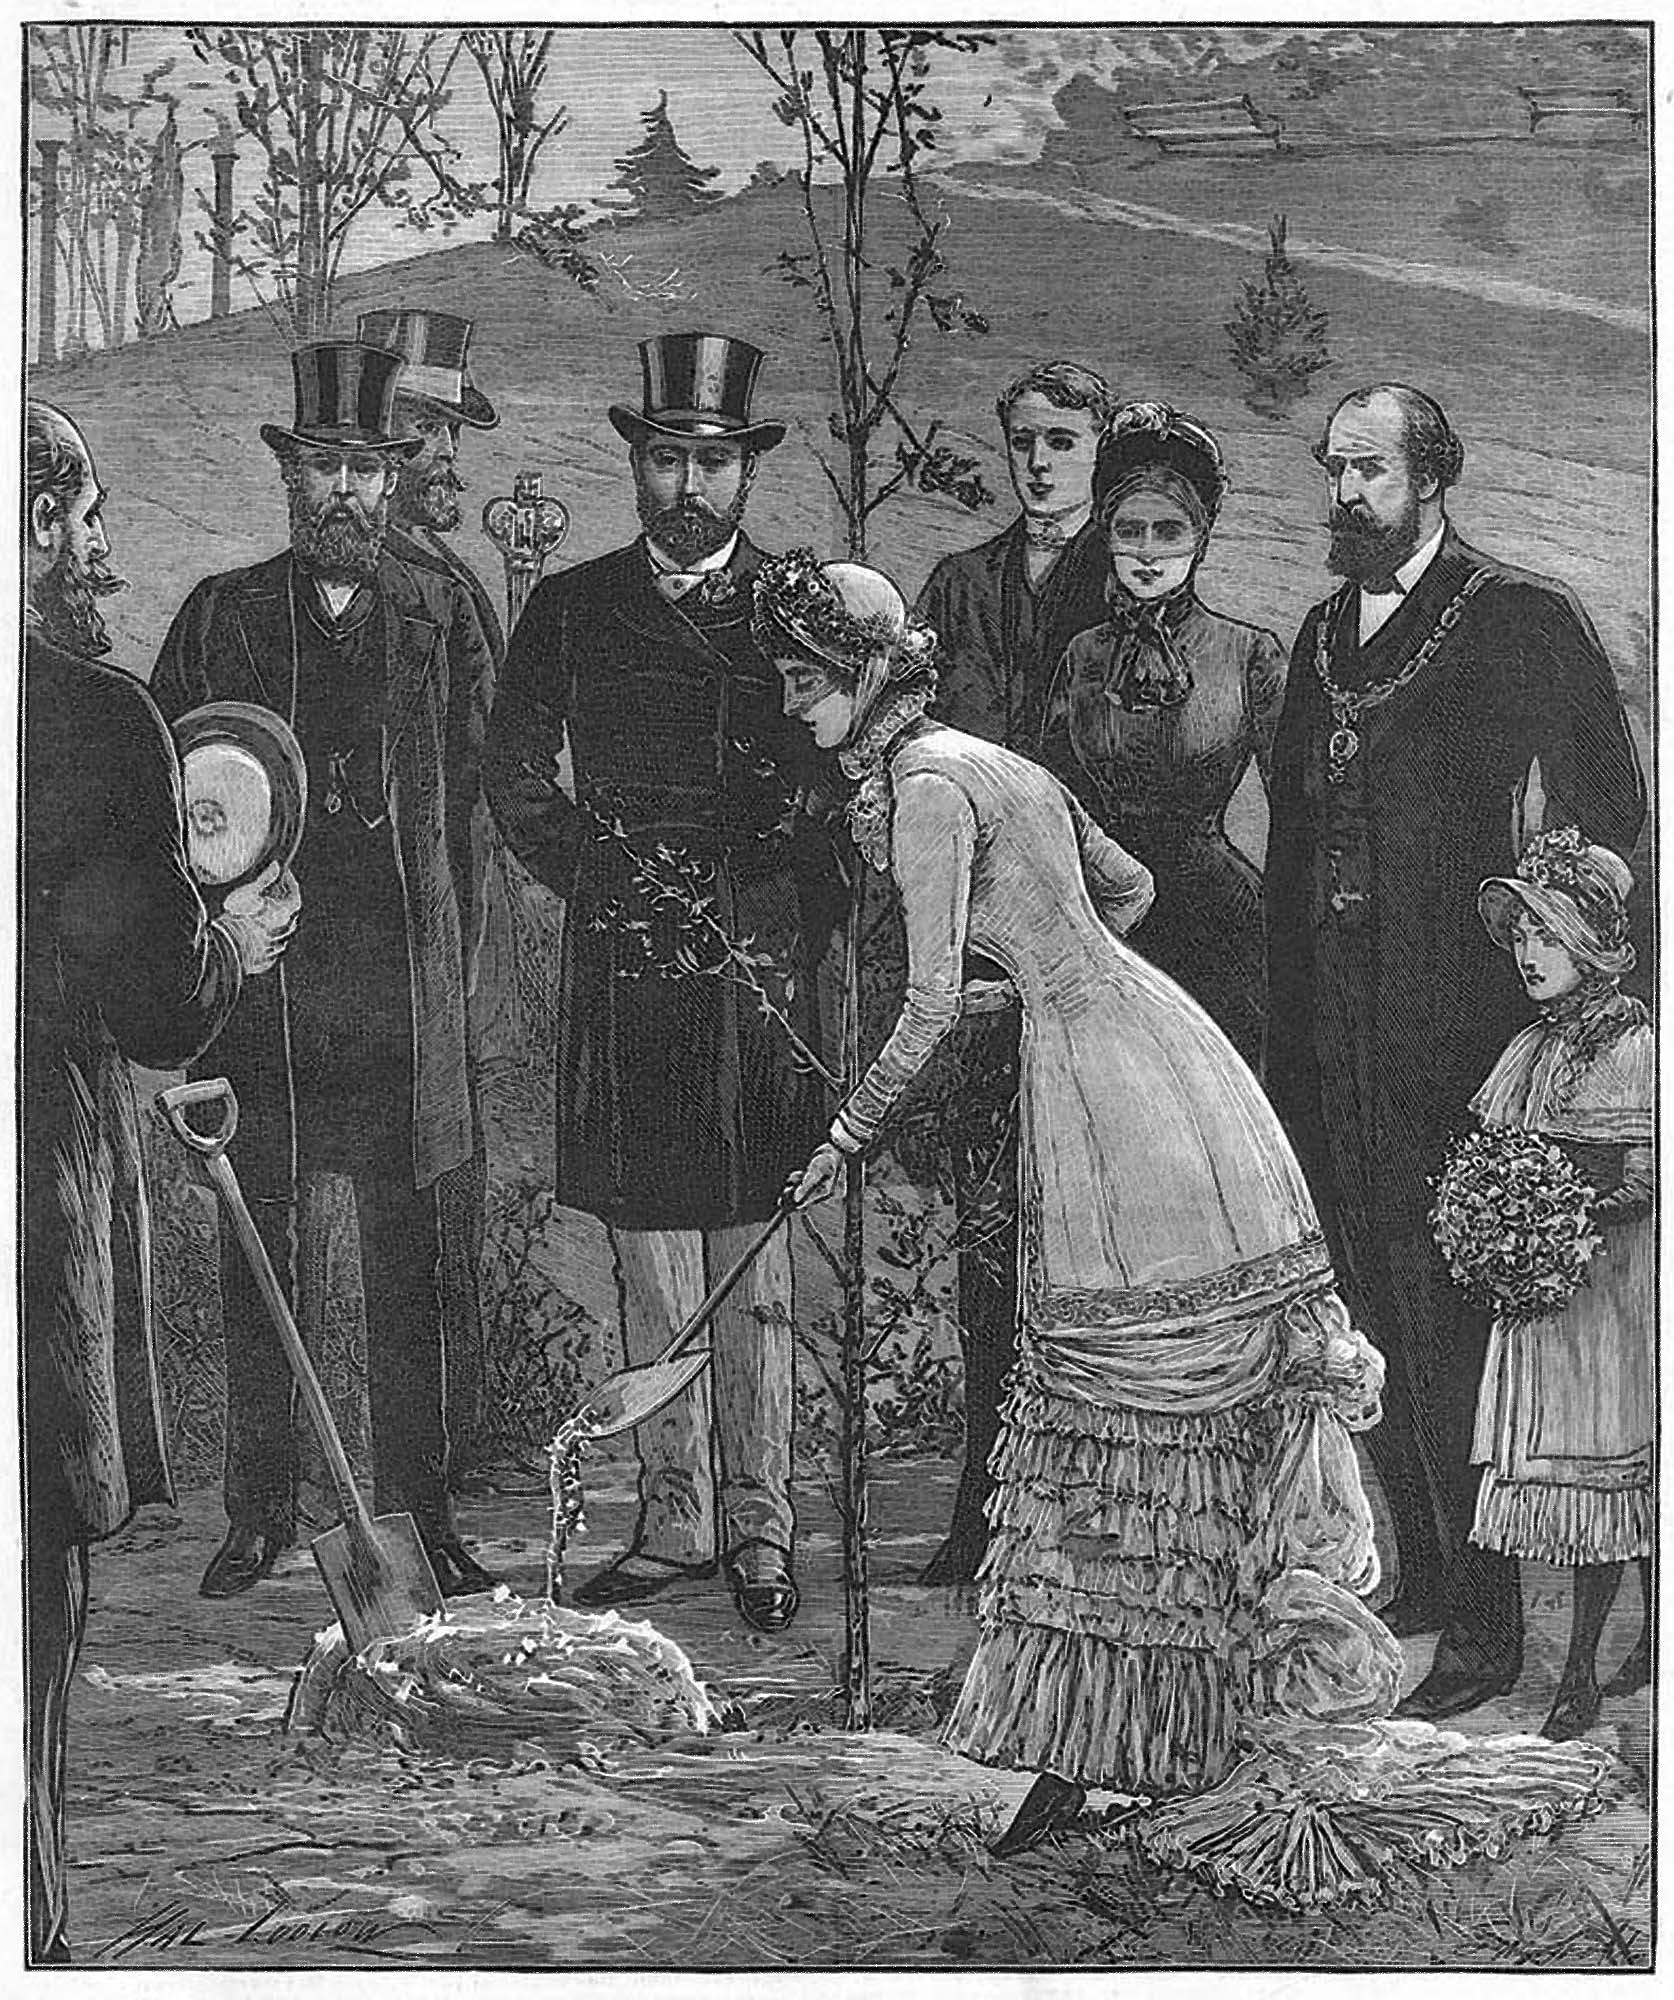 An engraving depicting the planting an oak tree in Abbey Park during the royal visit to Leicester, 1882 -